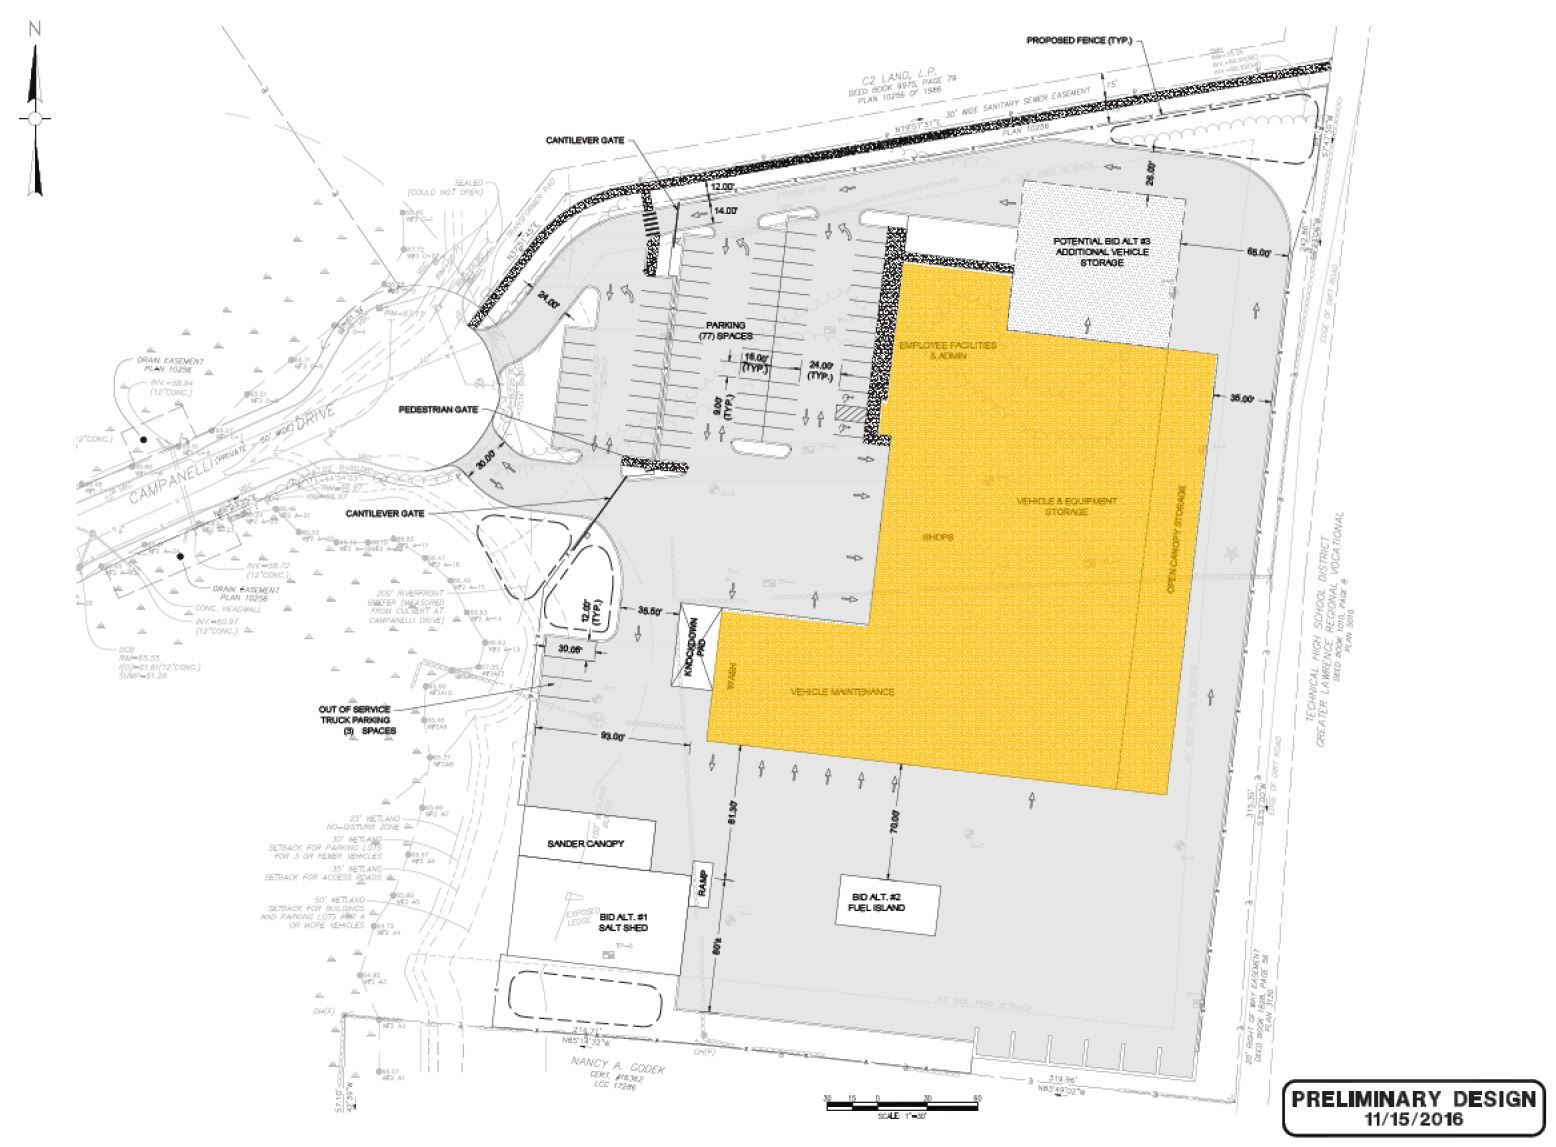 Preferred Concept - Site Plan